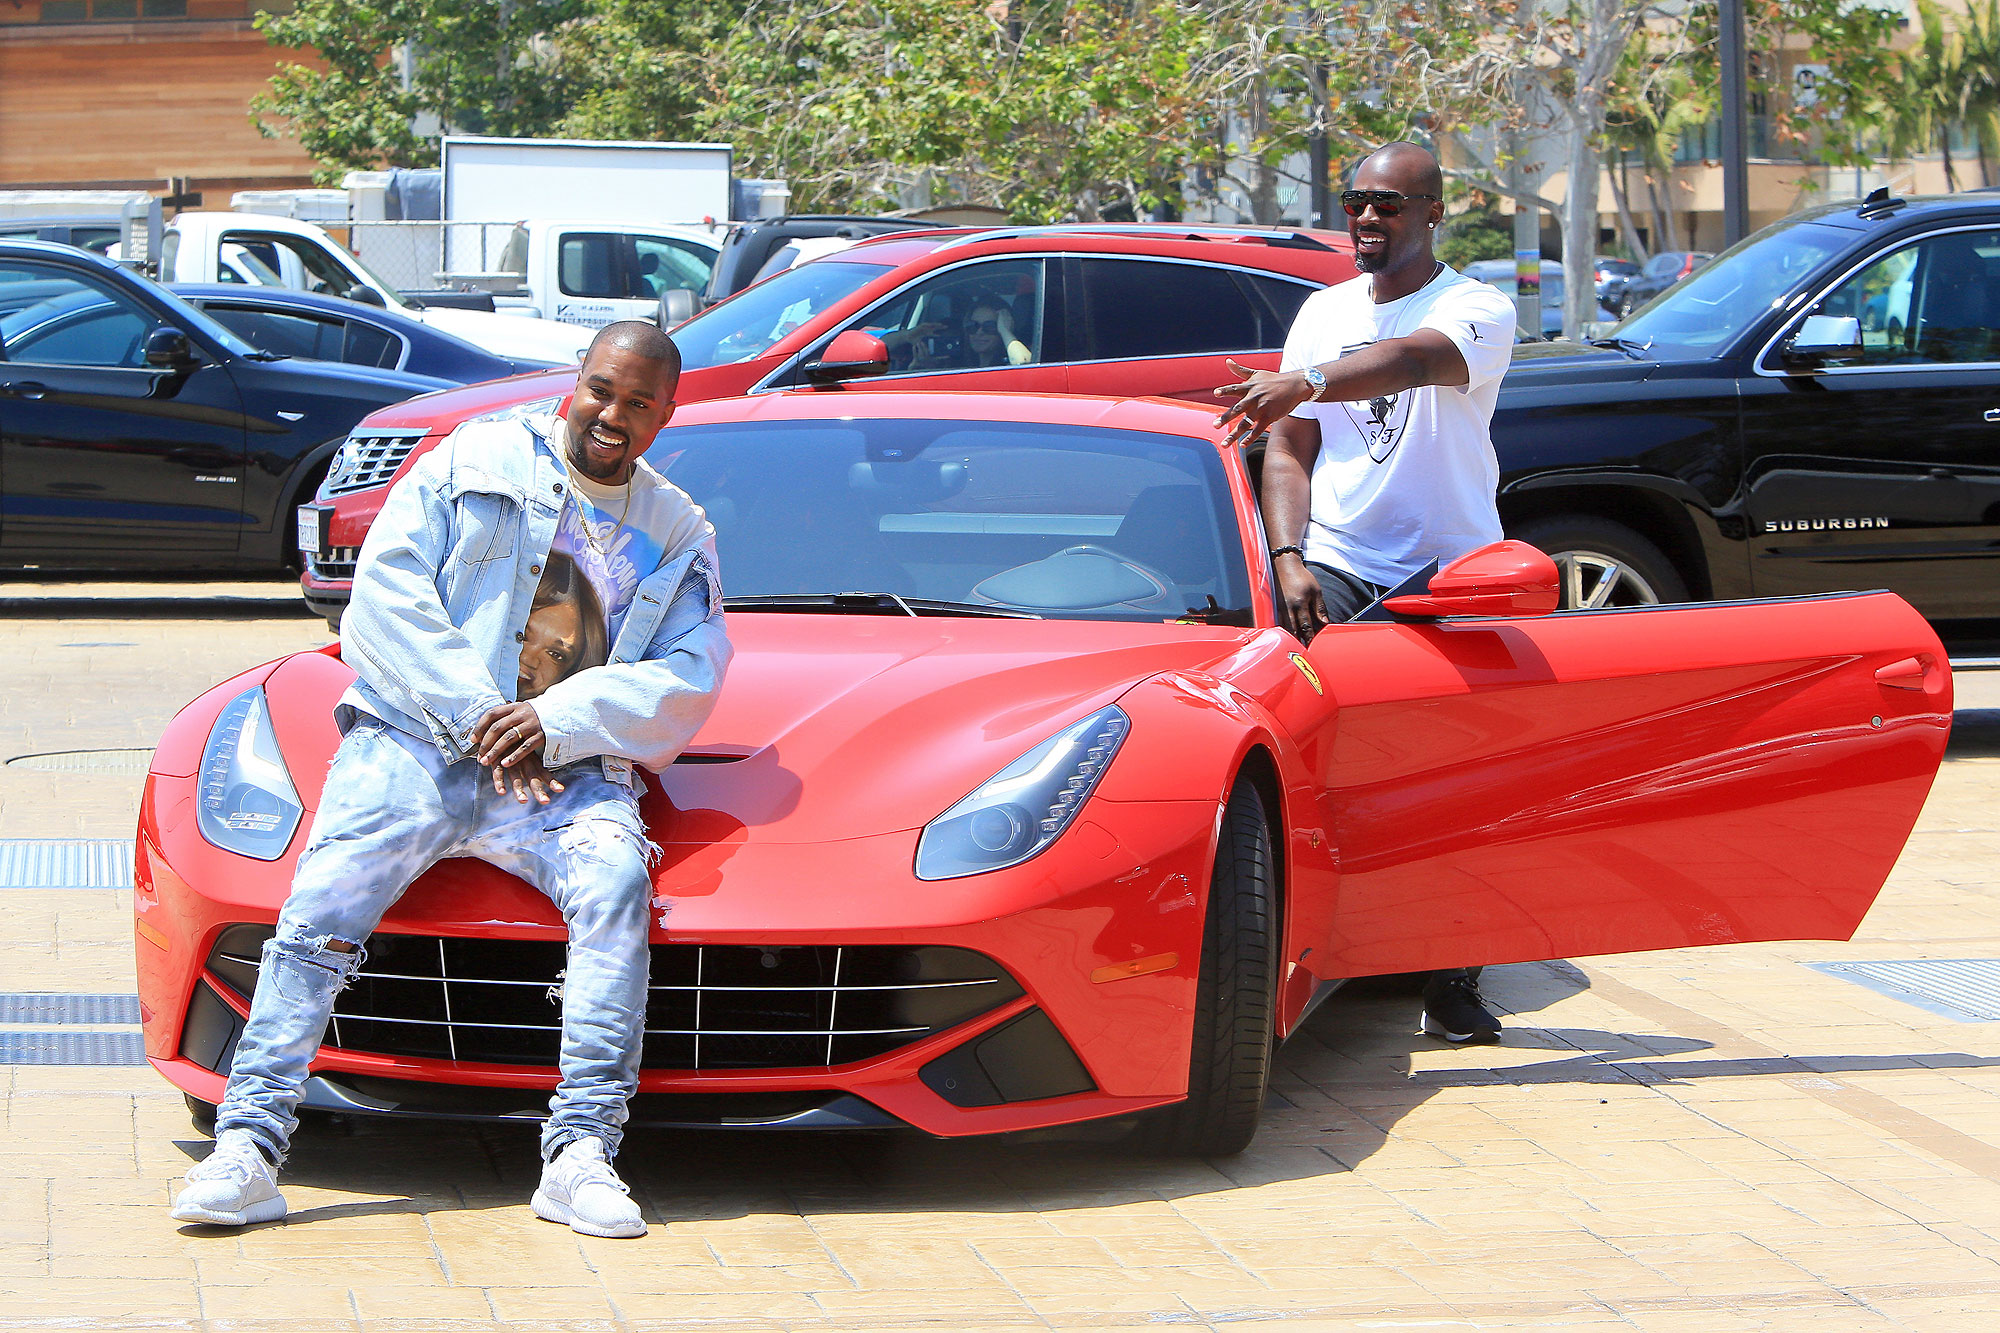 Kanye Poses On Corey Gamble's New Red Ferrari Leaving Lunch